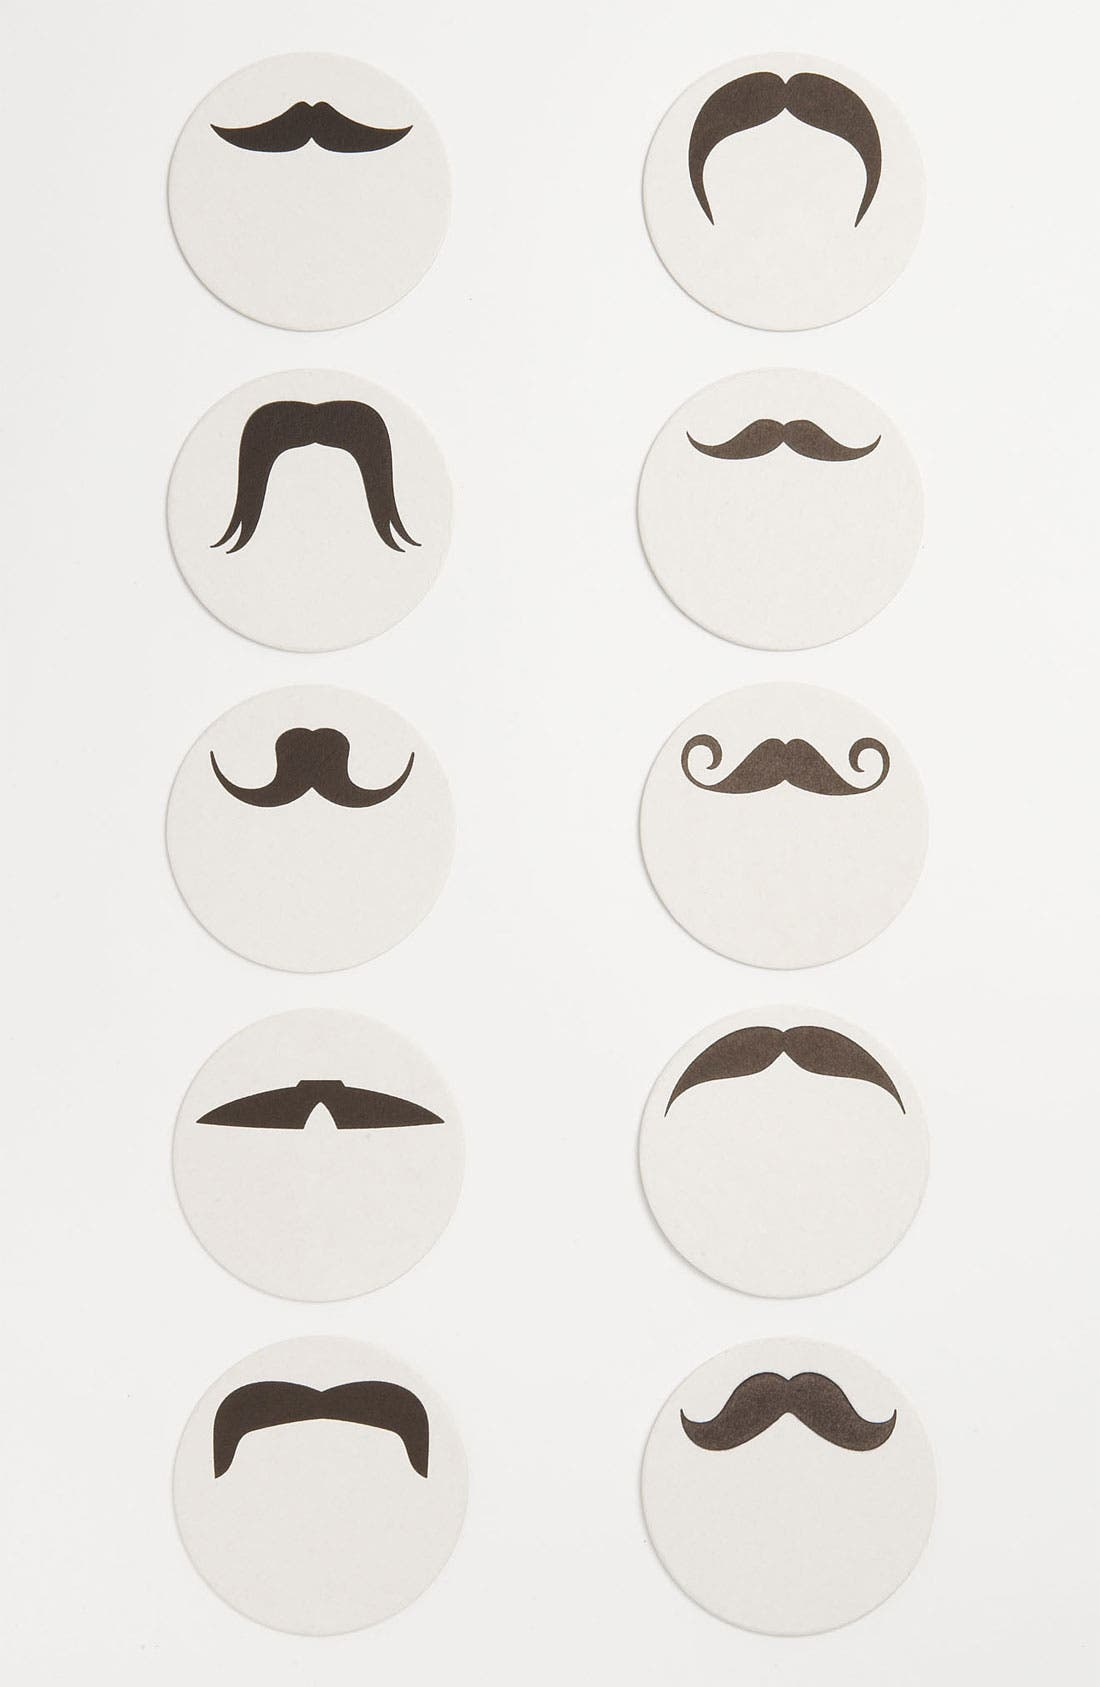 Alternate Image 1 Selected - 'Mustache' Letterpress Coasters (Set of 10)